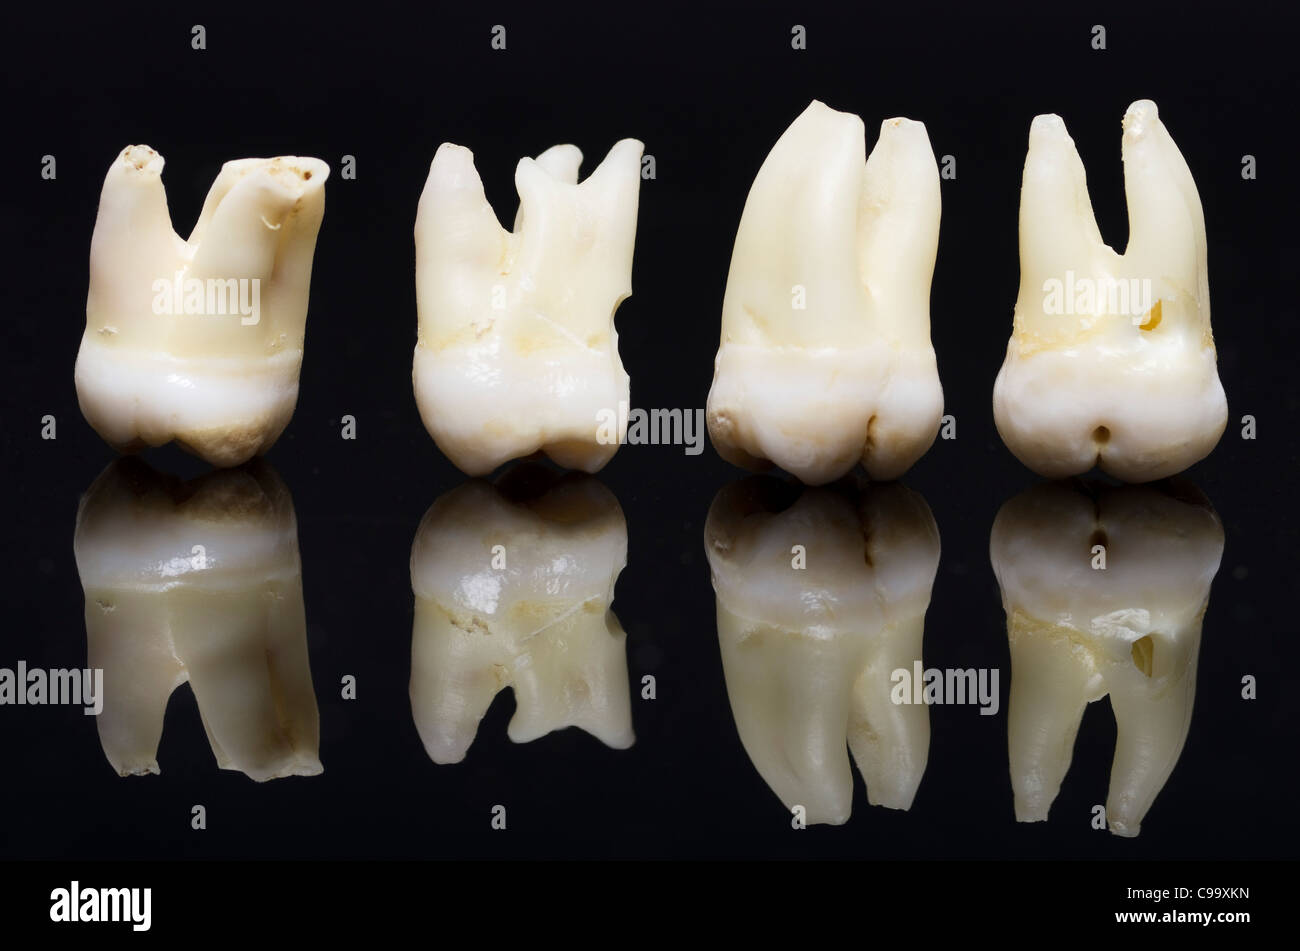 Row of wisdom tooth against black background - Stock Image